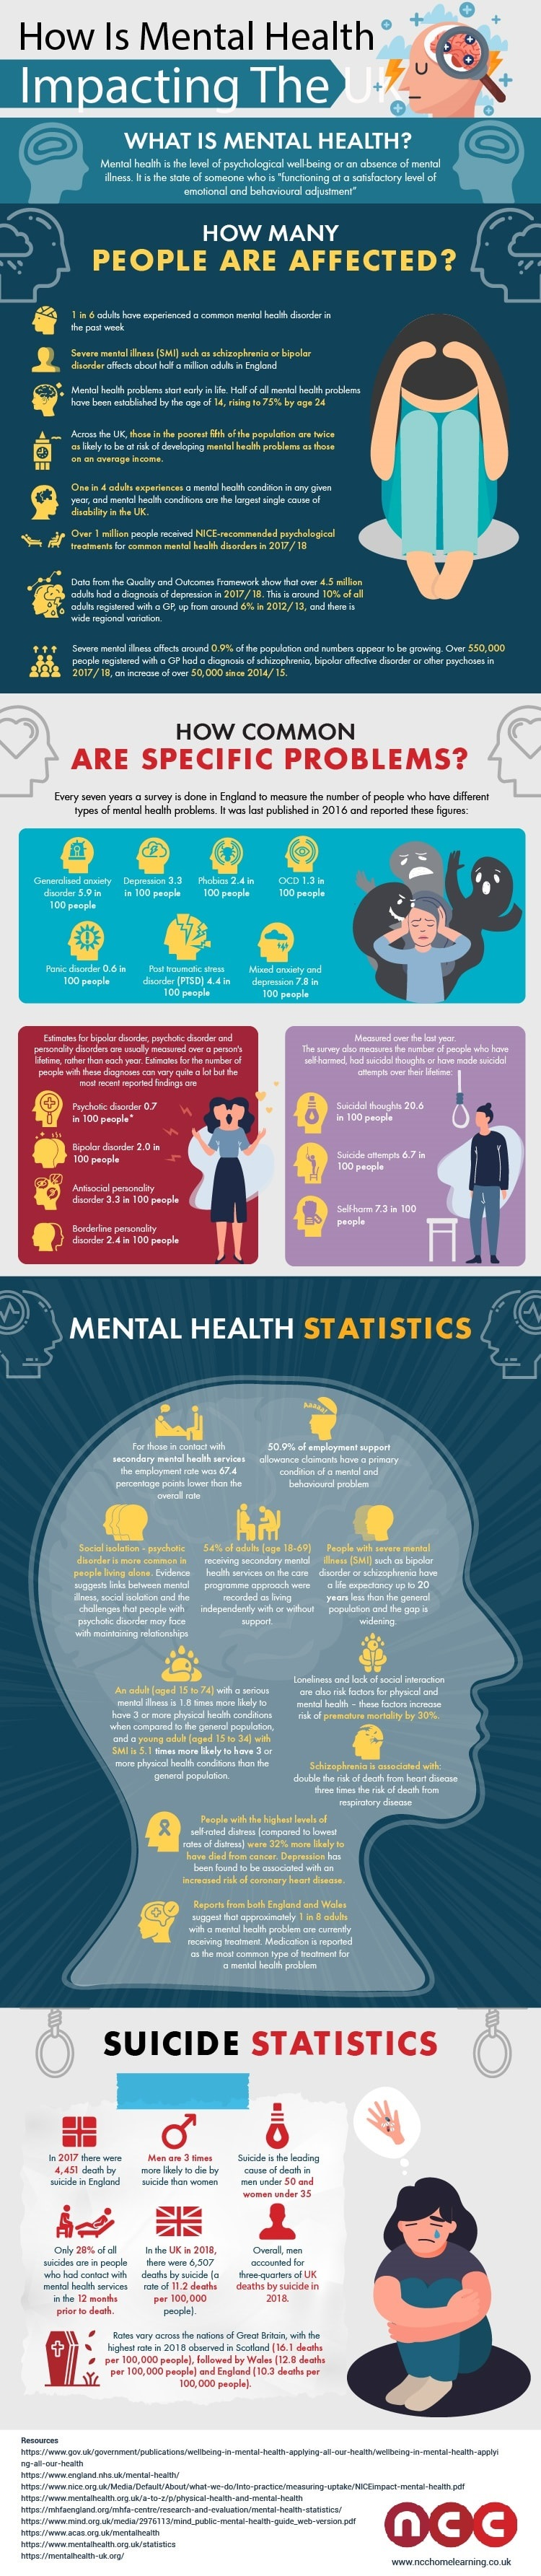 How mental health is impacting the UK